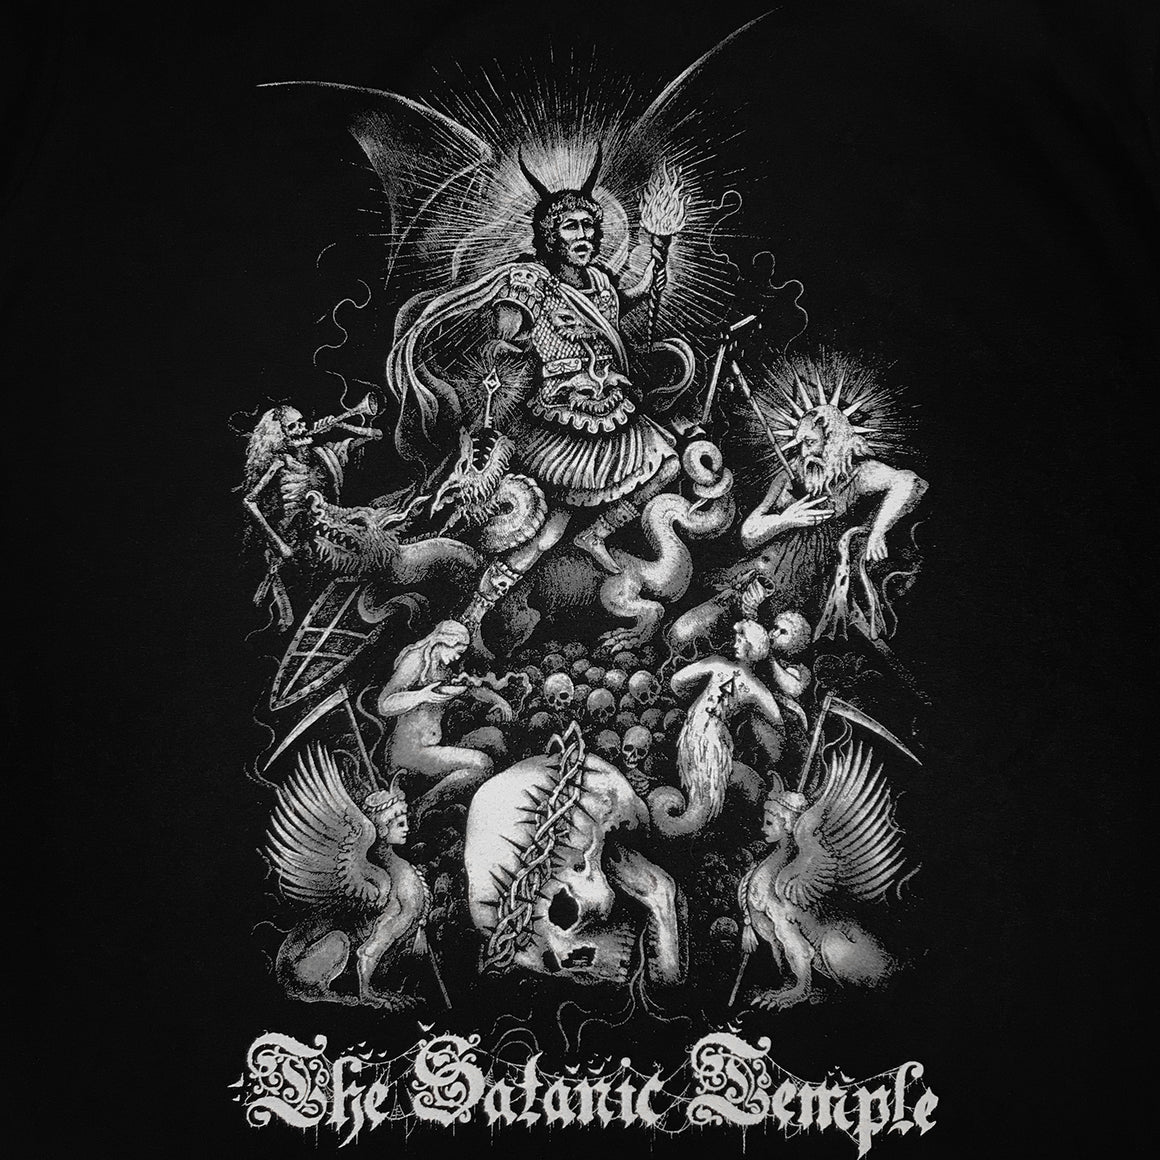 The Satanic Temple Paradise Lost shirt designed by Luciana Nedelea